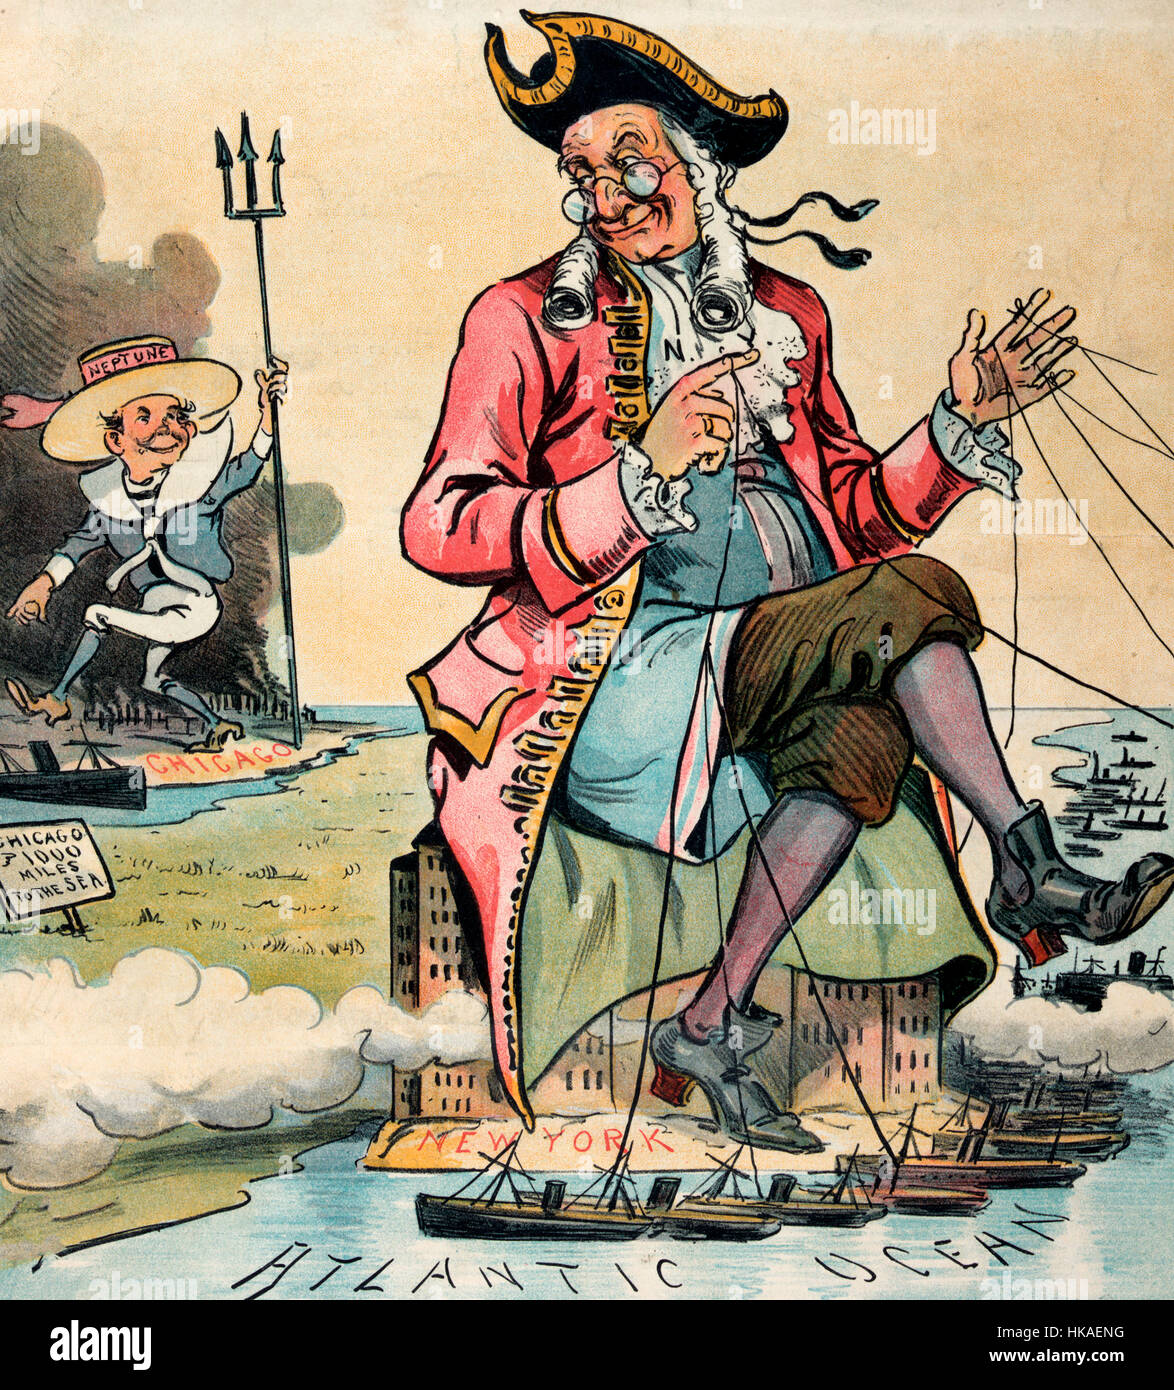 The Chicago Neptune - Political Cartoon shows a large elderly colonial man labeled 'N.Y.' sitting atop buildings - Stock Image